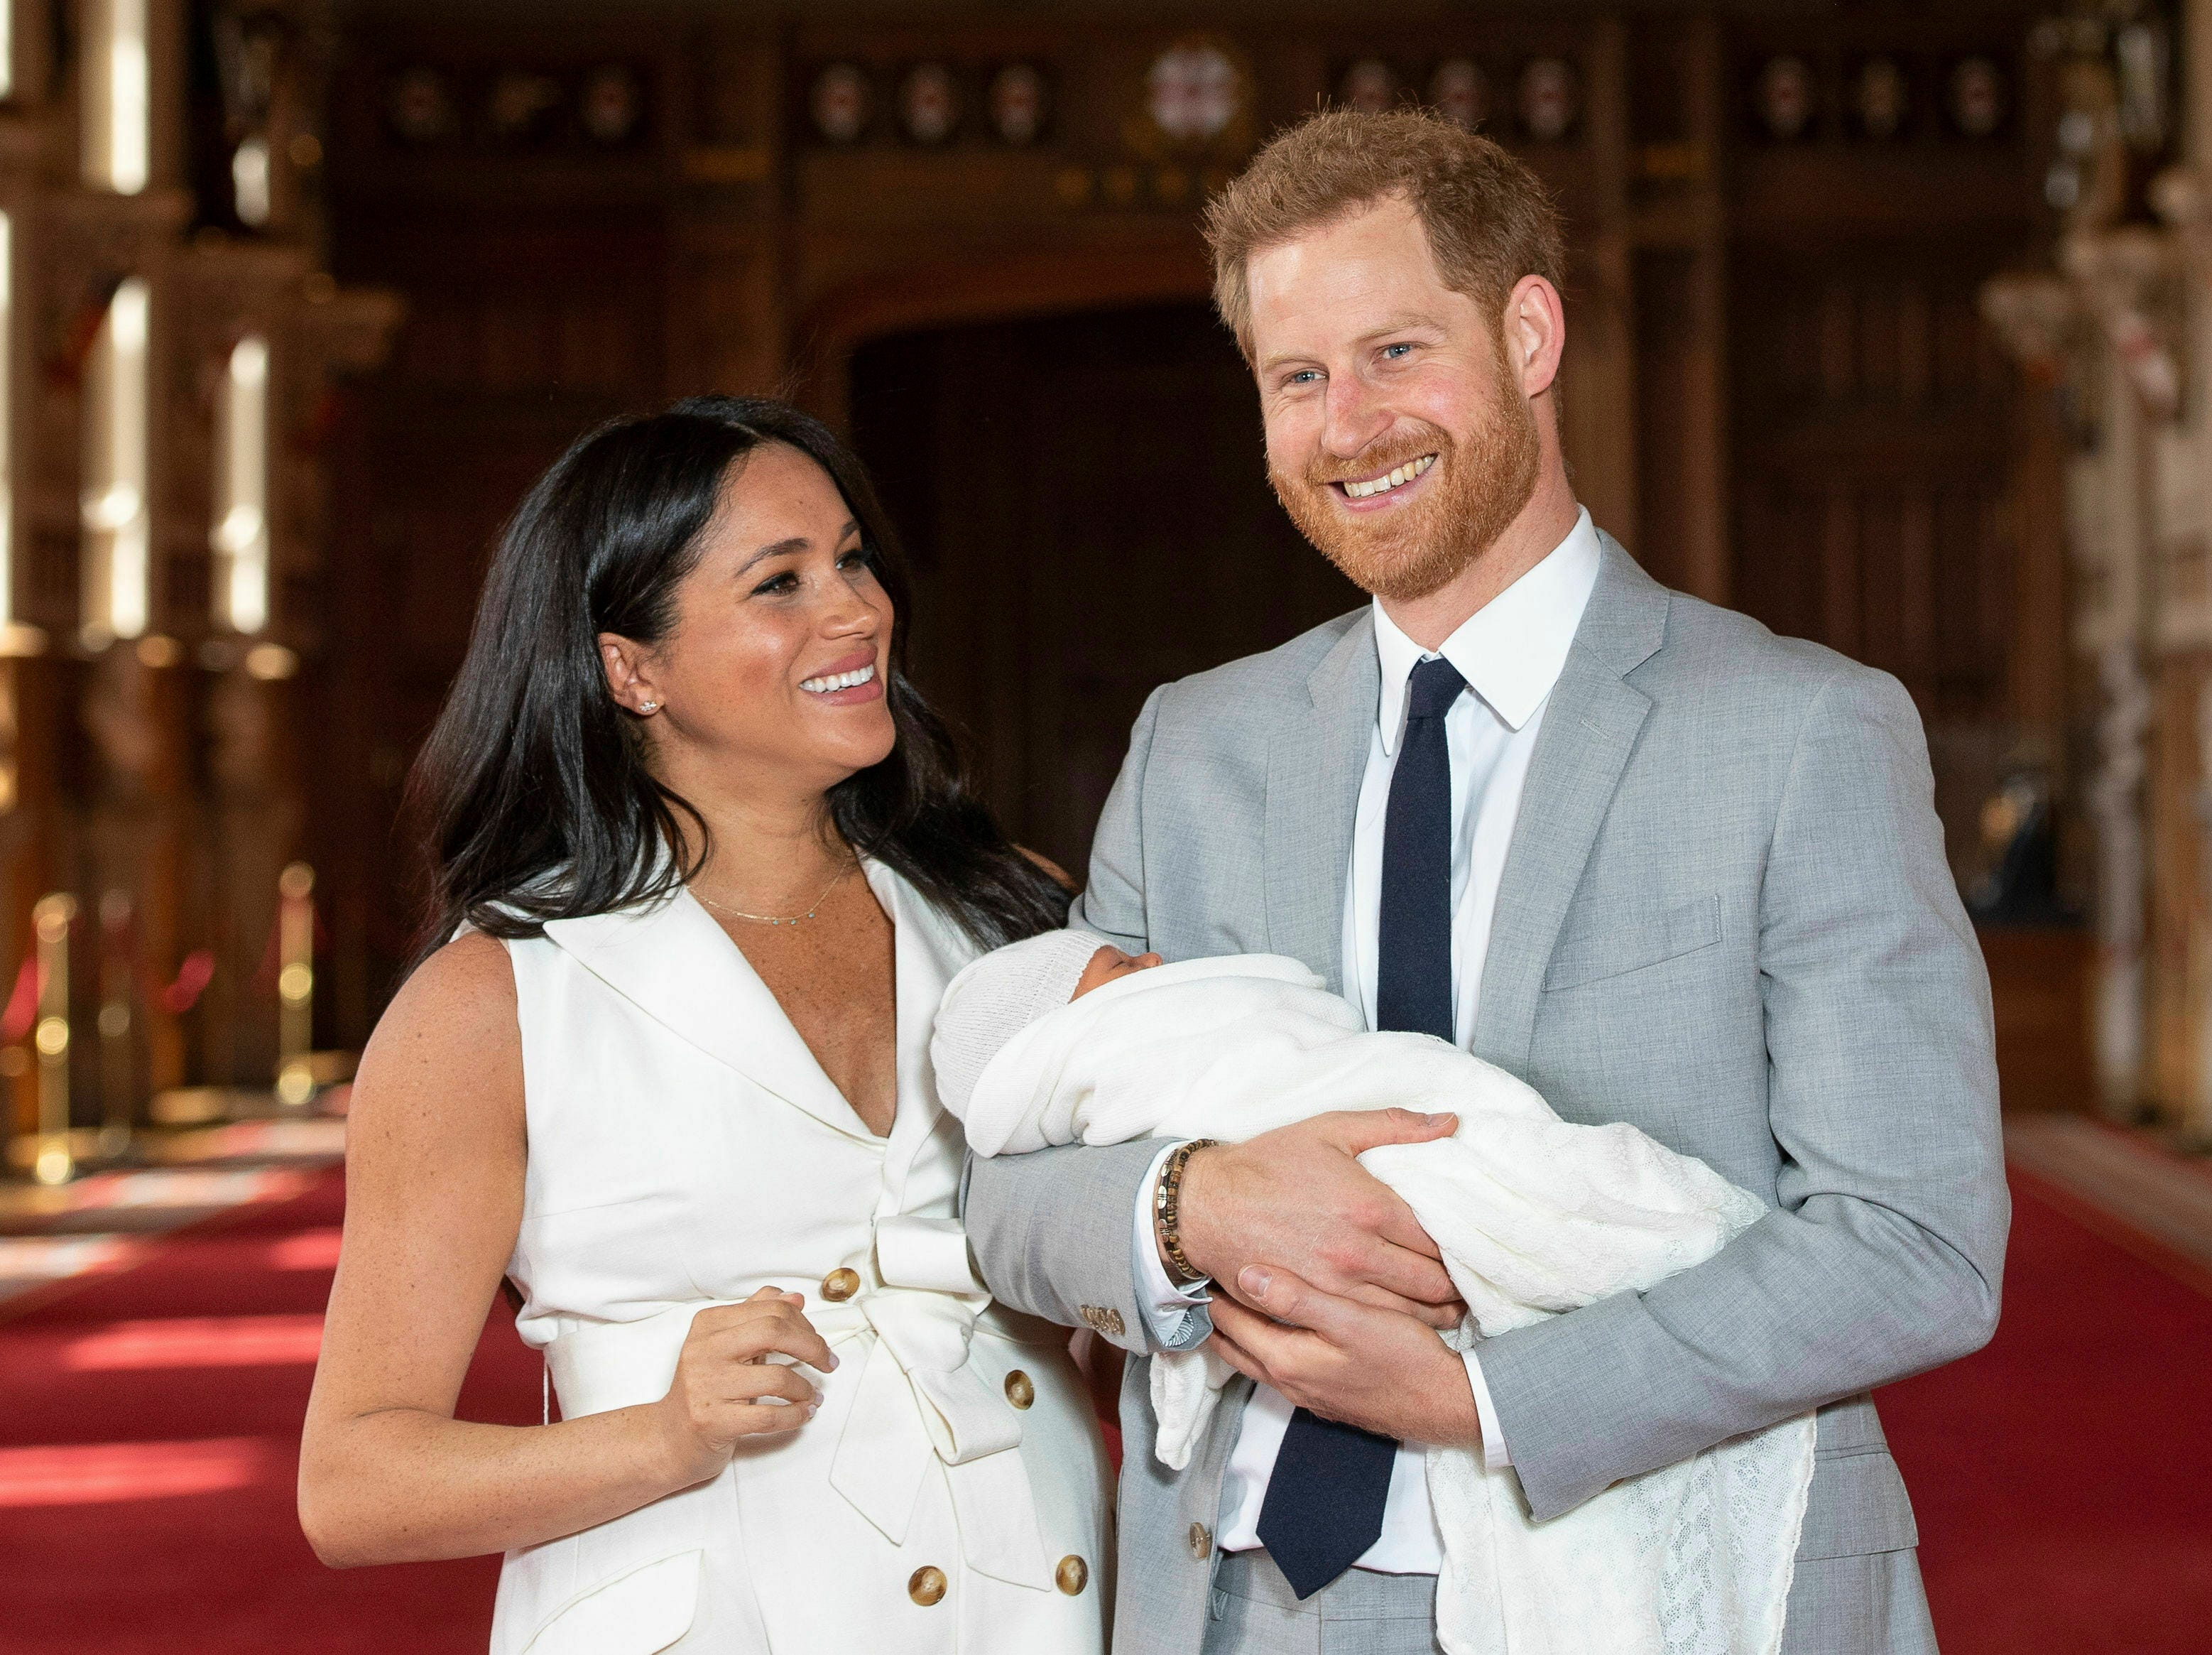 Britain's Prince Harry and Meghan, duchess of Sussex, during a photocall with their newborn son in St. George's Hall at Windsor Castle, Windsor, south England, Wednesday May 8, 2019. Baby Sussex was born Monday at 5:26 a.m.